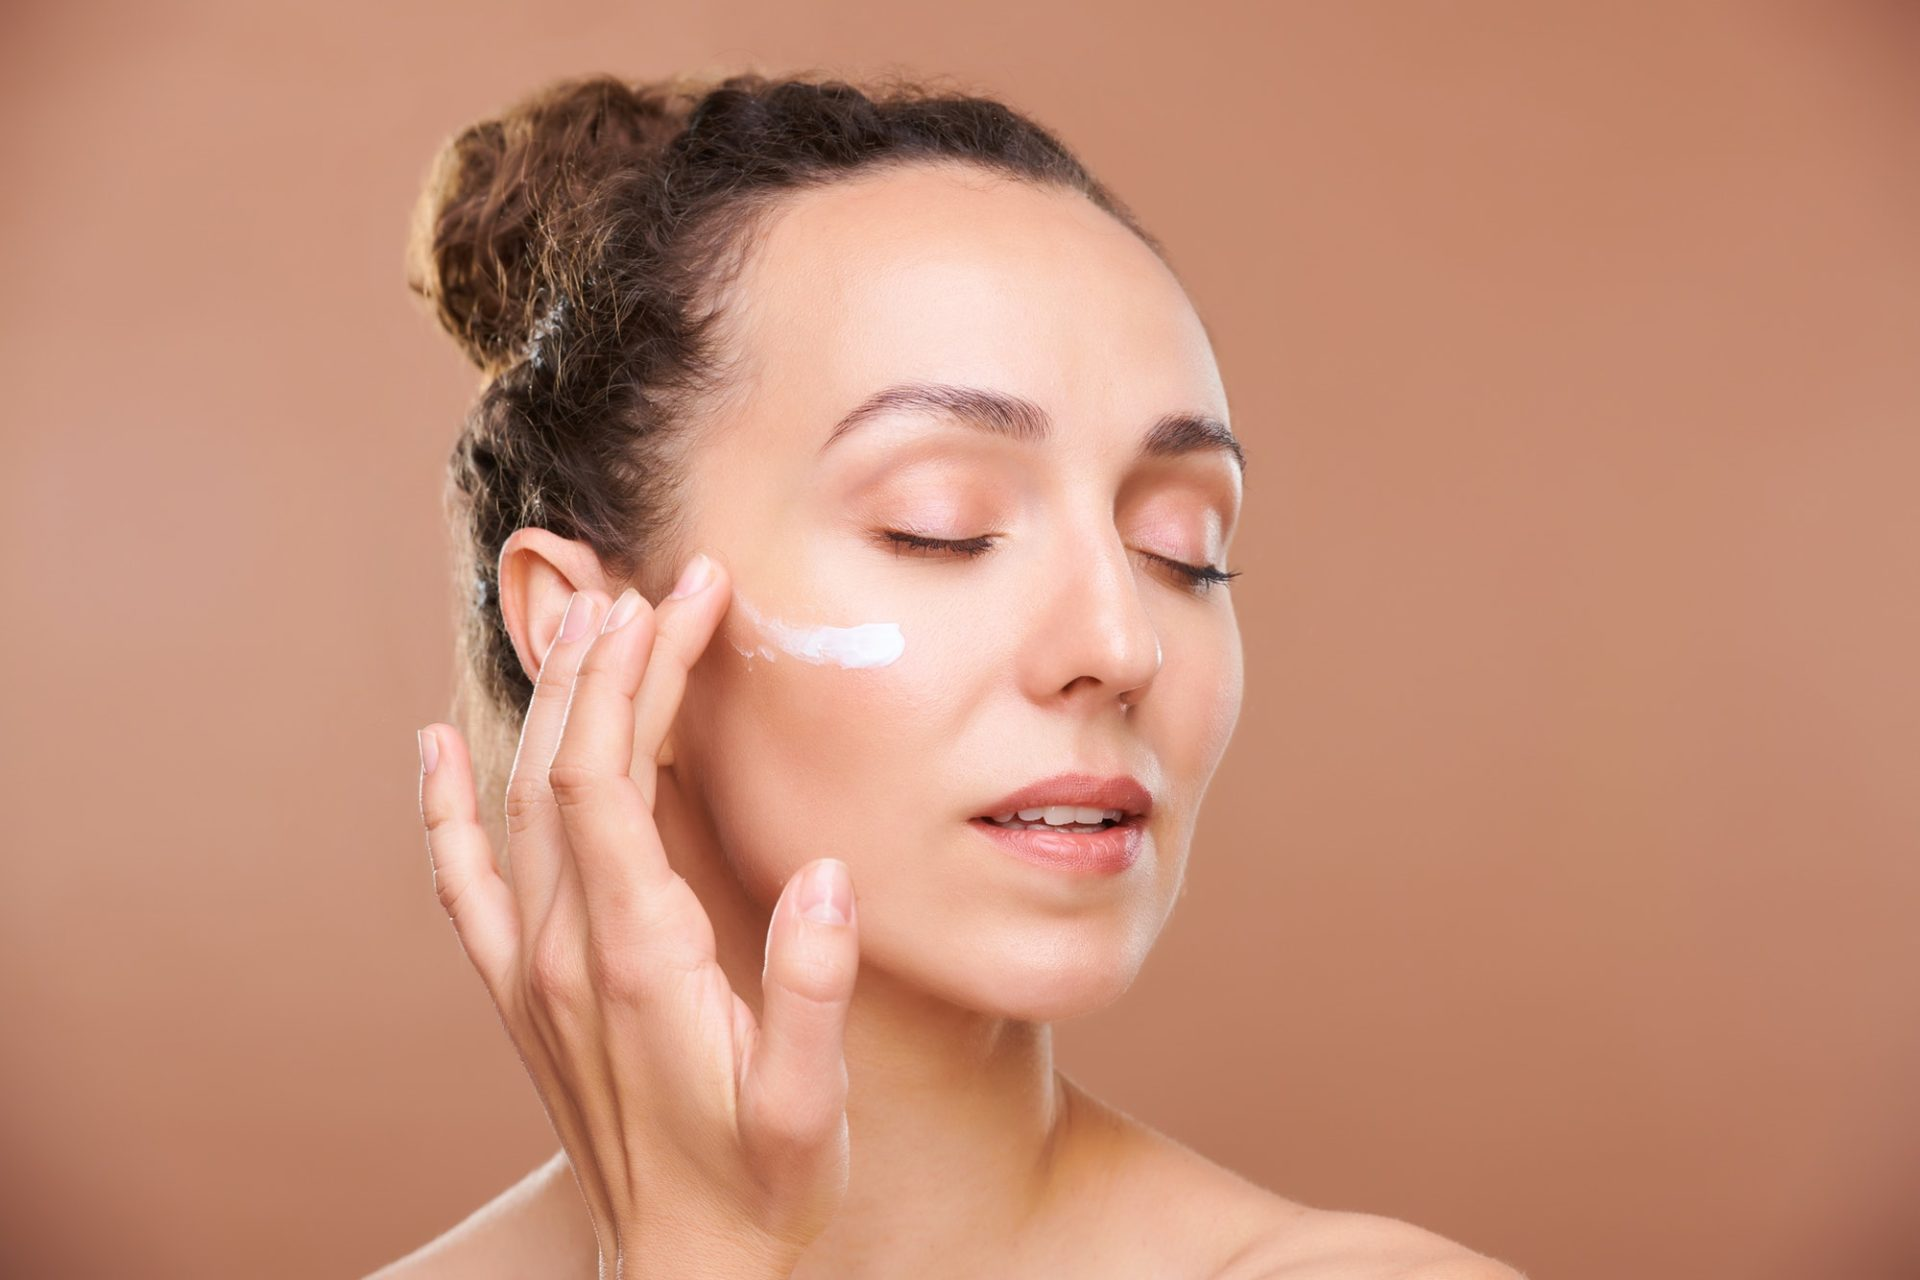 Young gorgeous woman applying facial cream or serum on undereye area